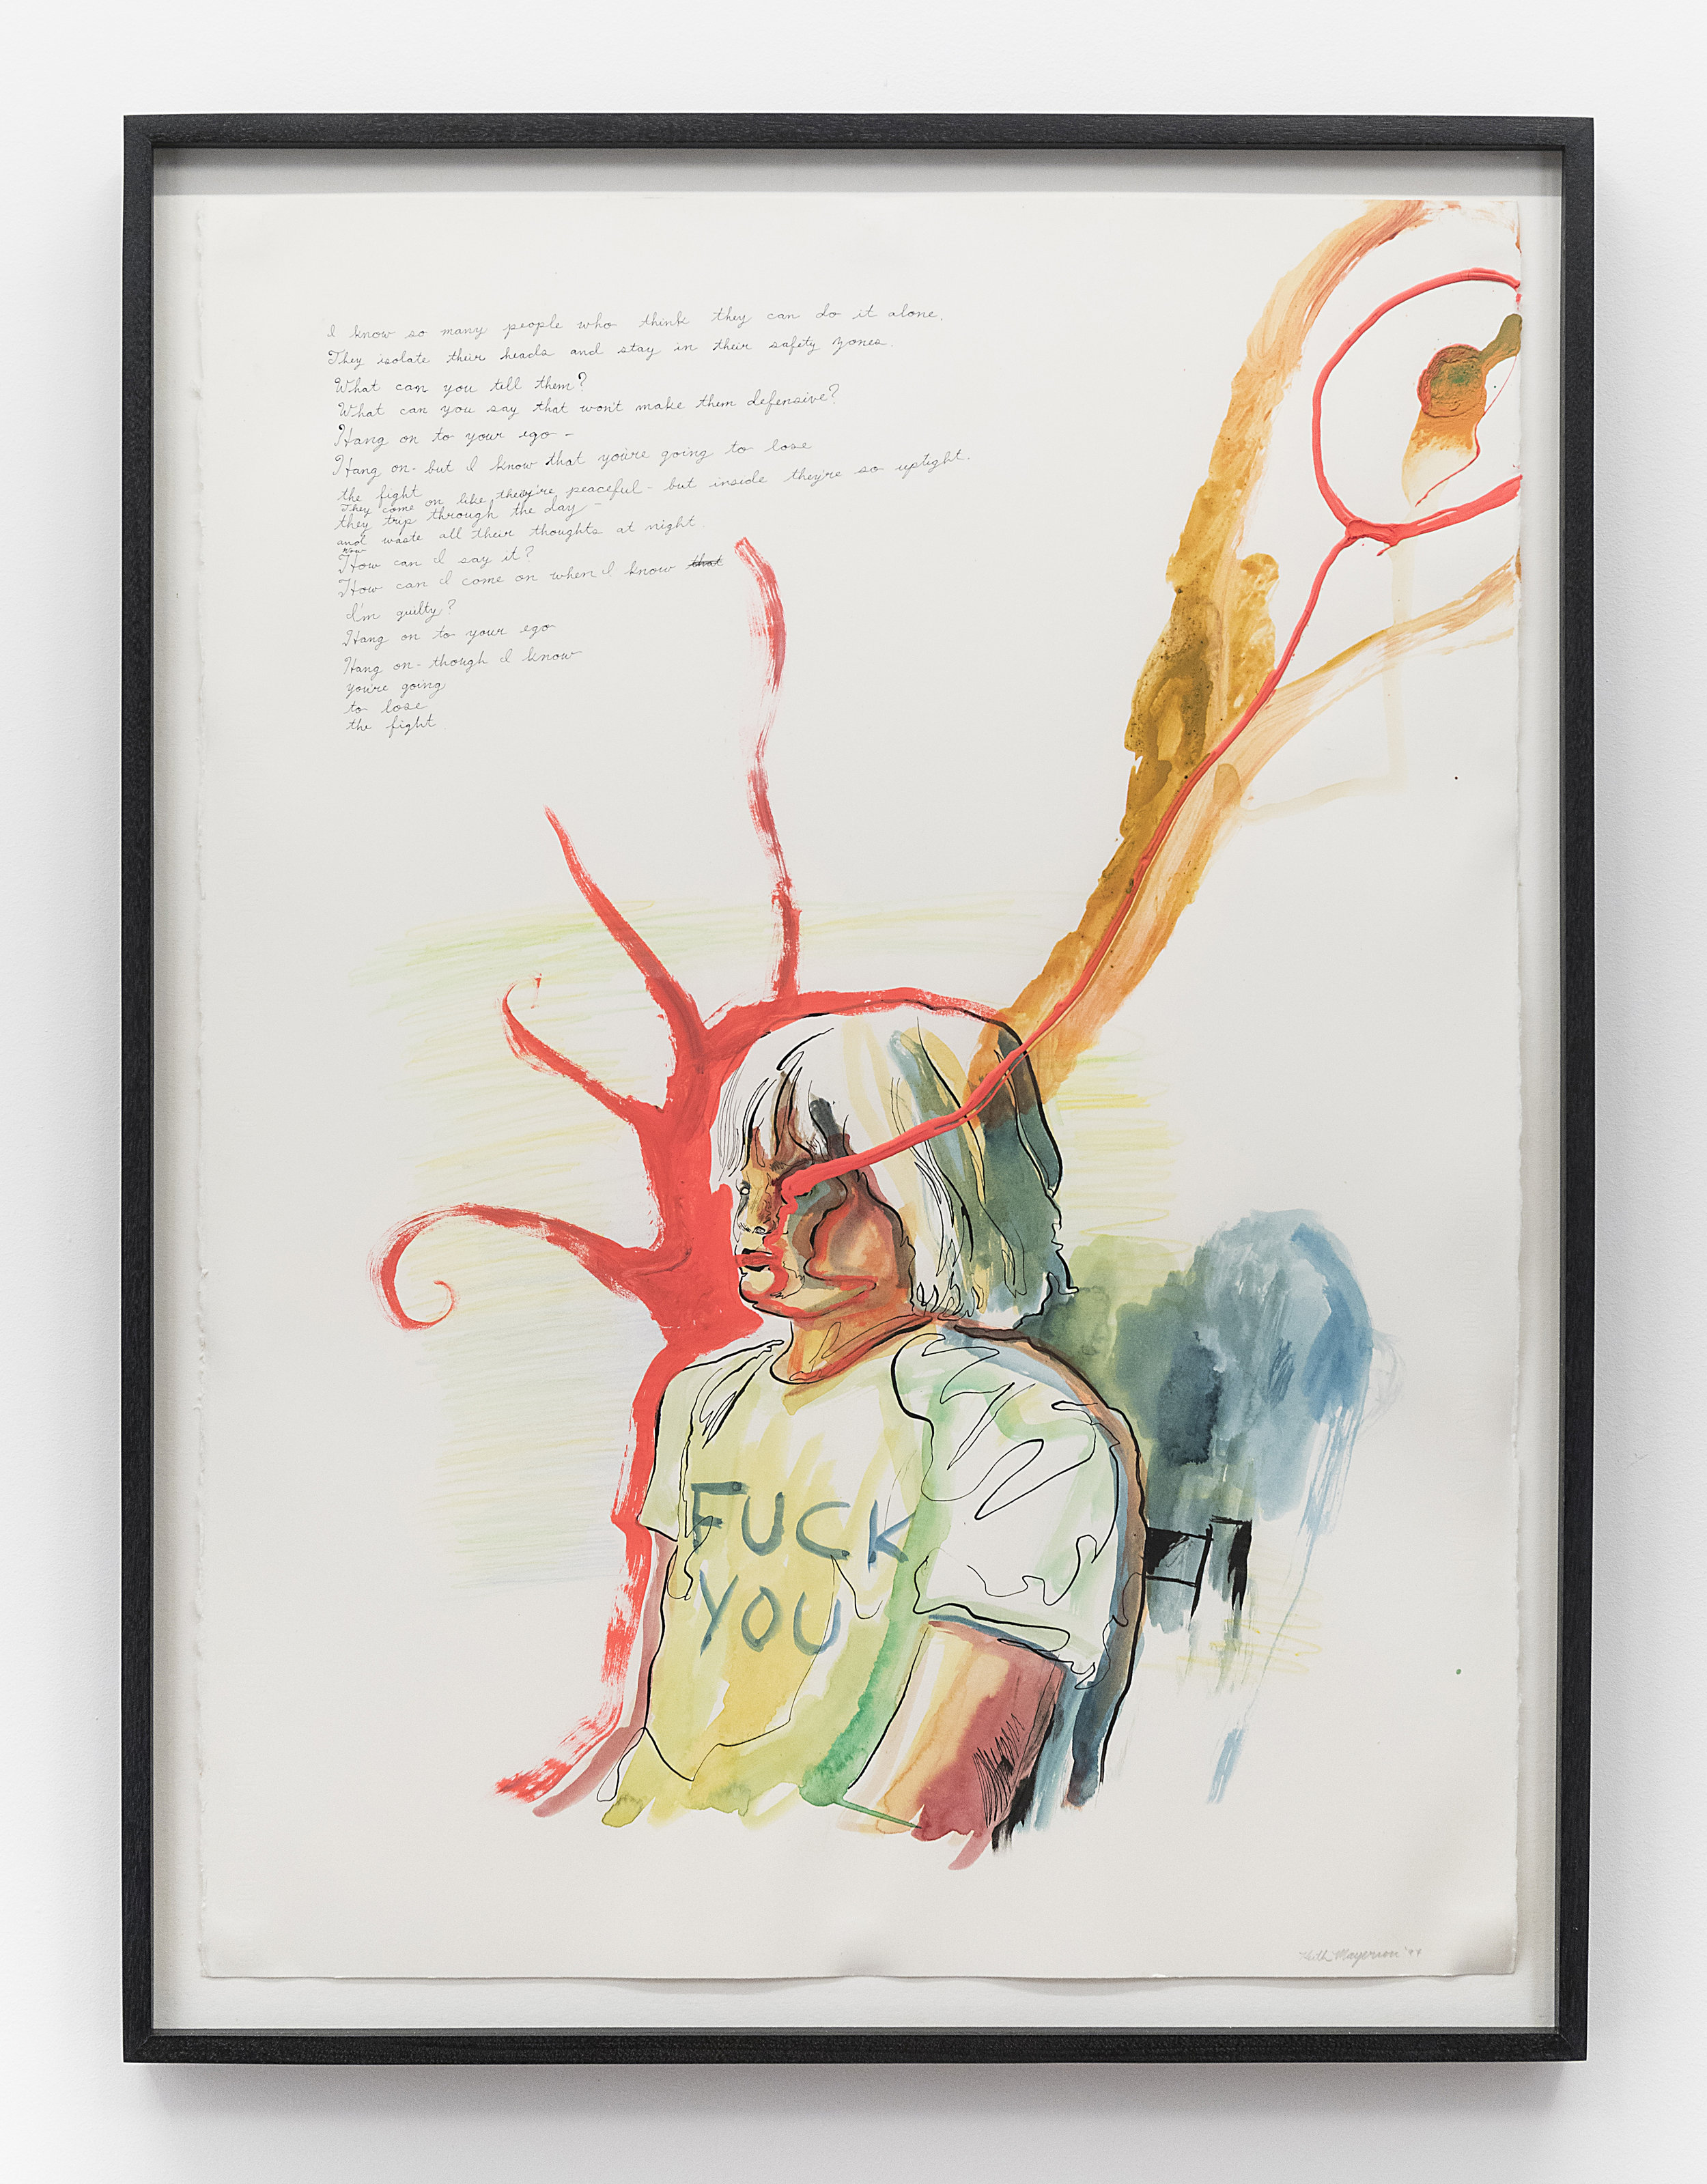 Keith Mayerson  Hang on to Your Ego  1997 Mixed media on watercolor paper 30 x 22 inches